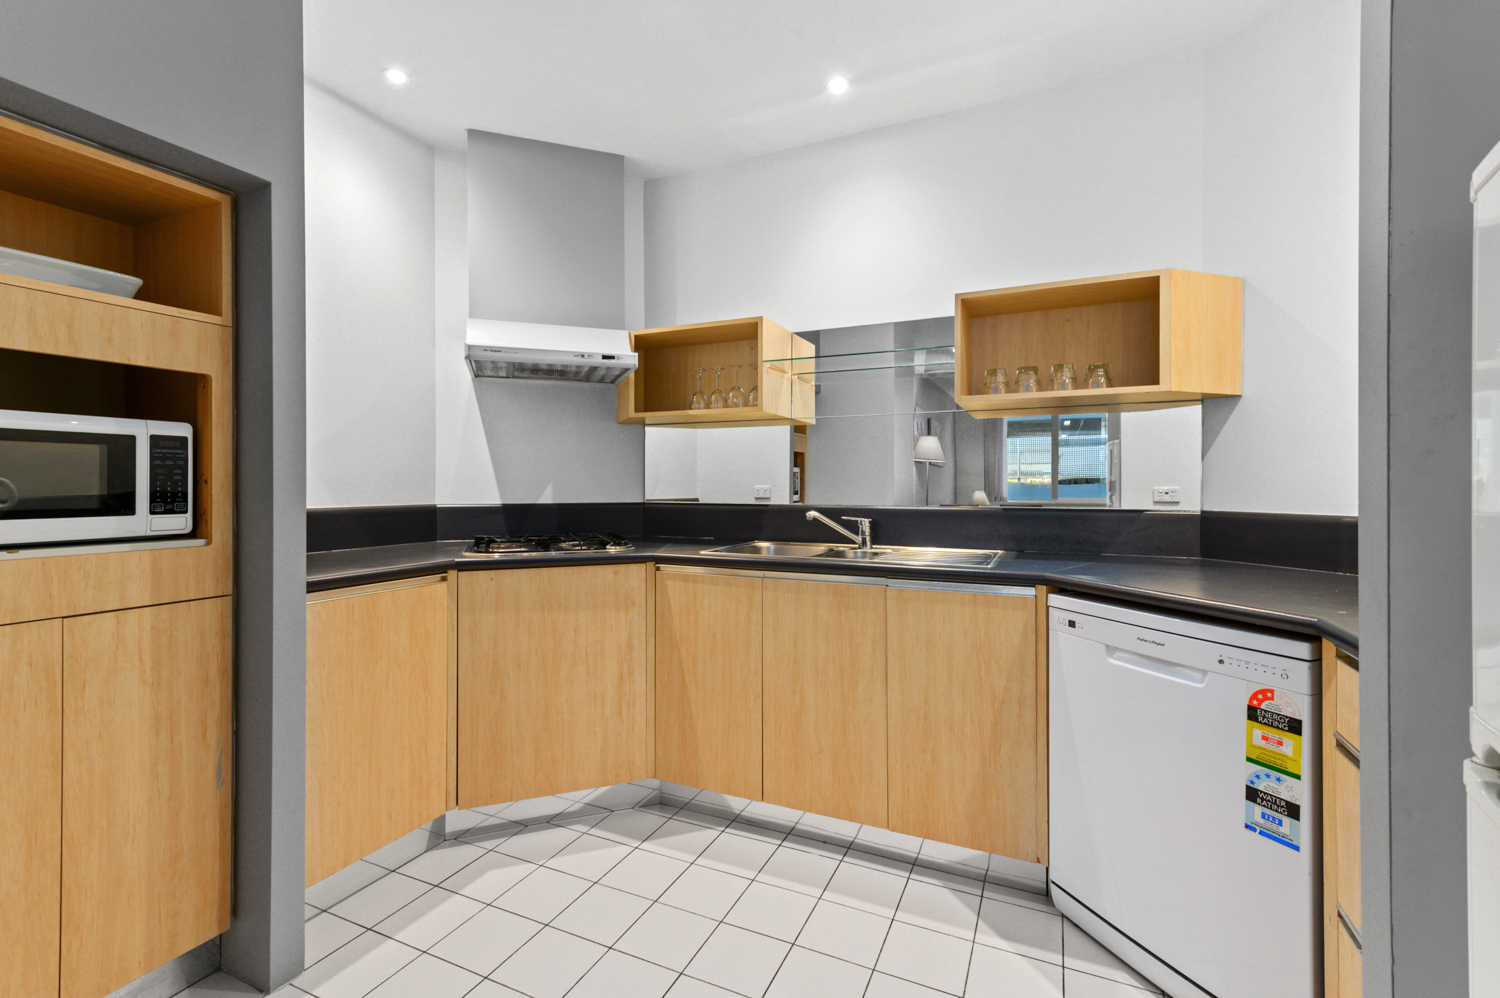 307-604-st-kilda-road-melbourne-student-accommodation-Melbourne-kitchen-Unilodgers